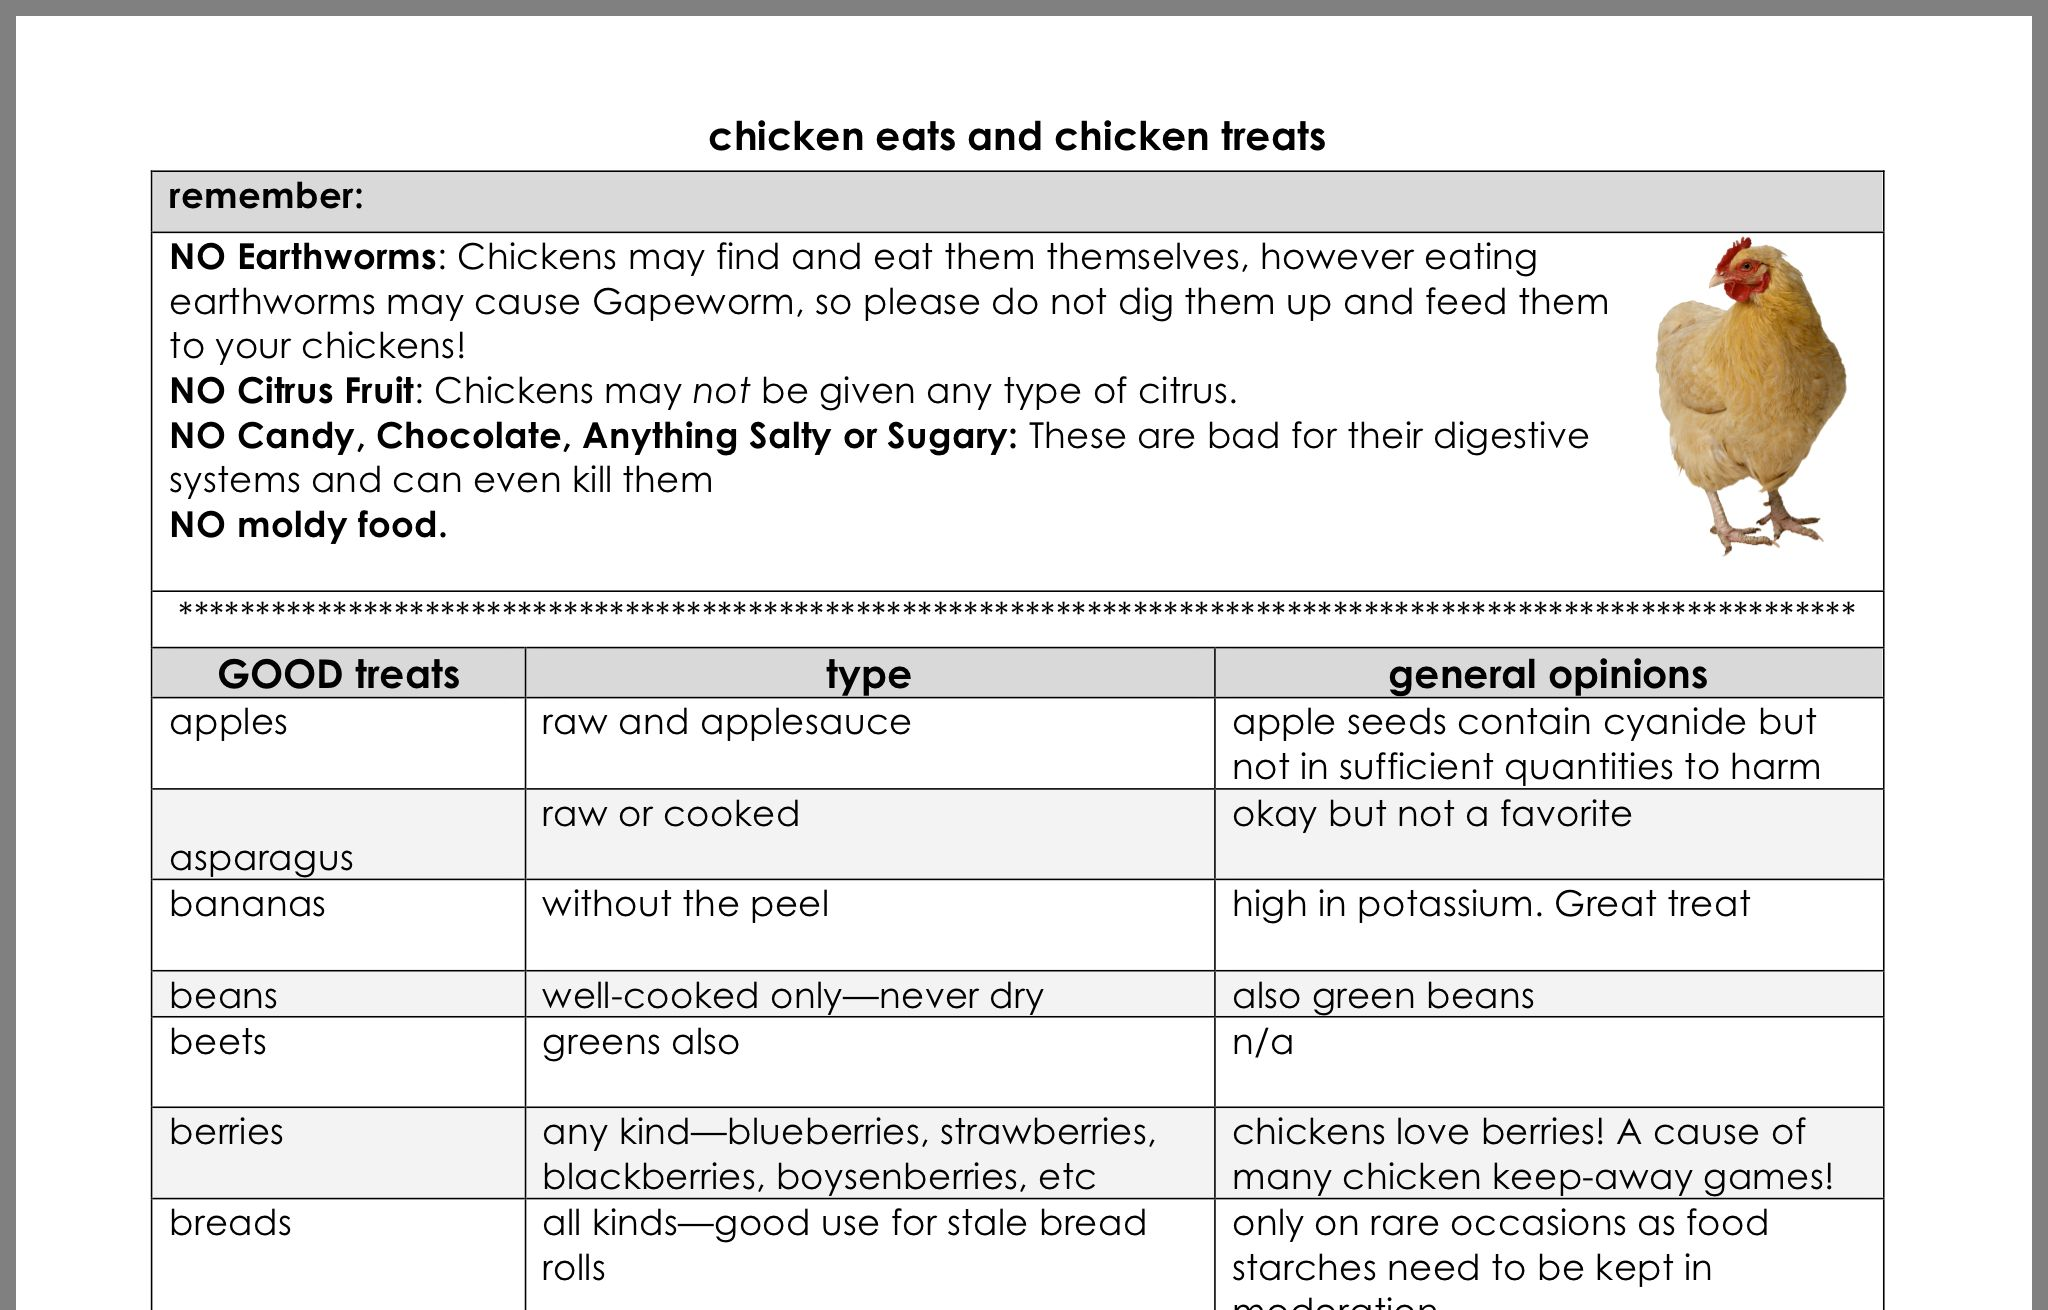 Pin By Kathleen Mcdiarmid On Chickens Fowl Chicken Treats Chicken Eating Citrus Fruit